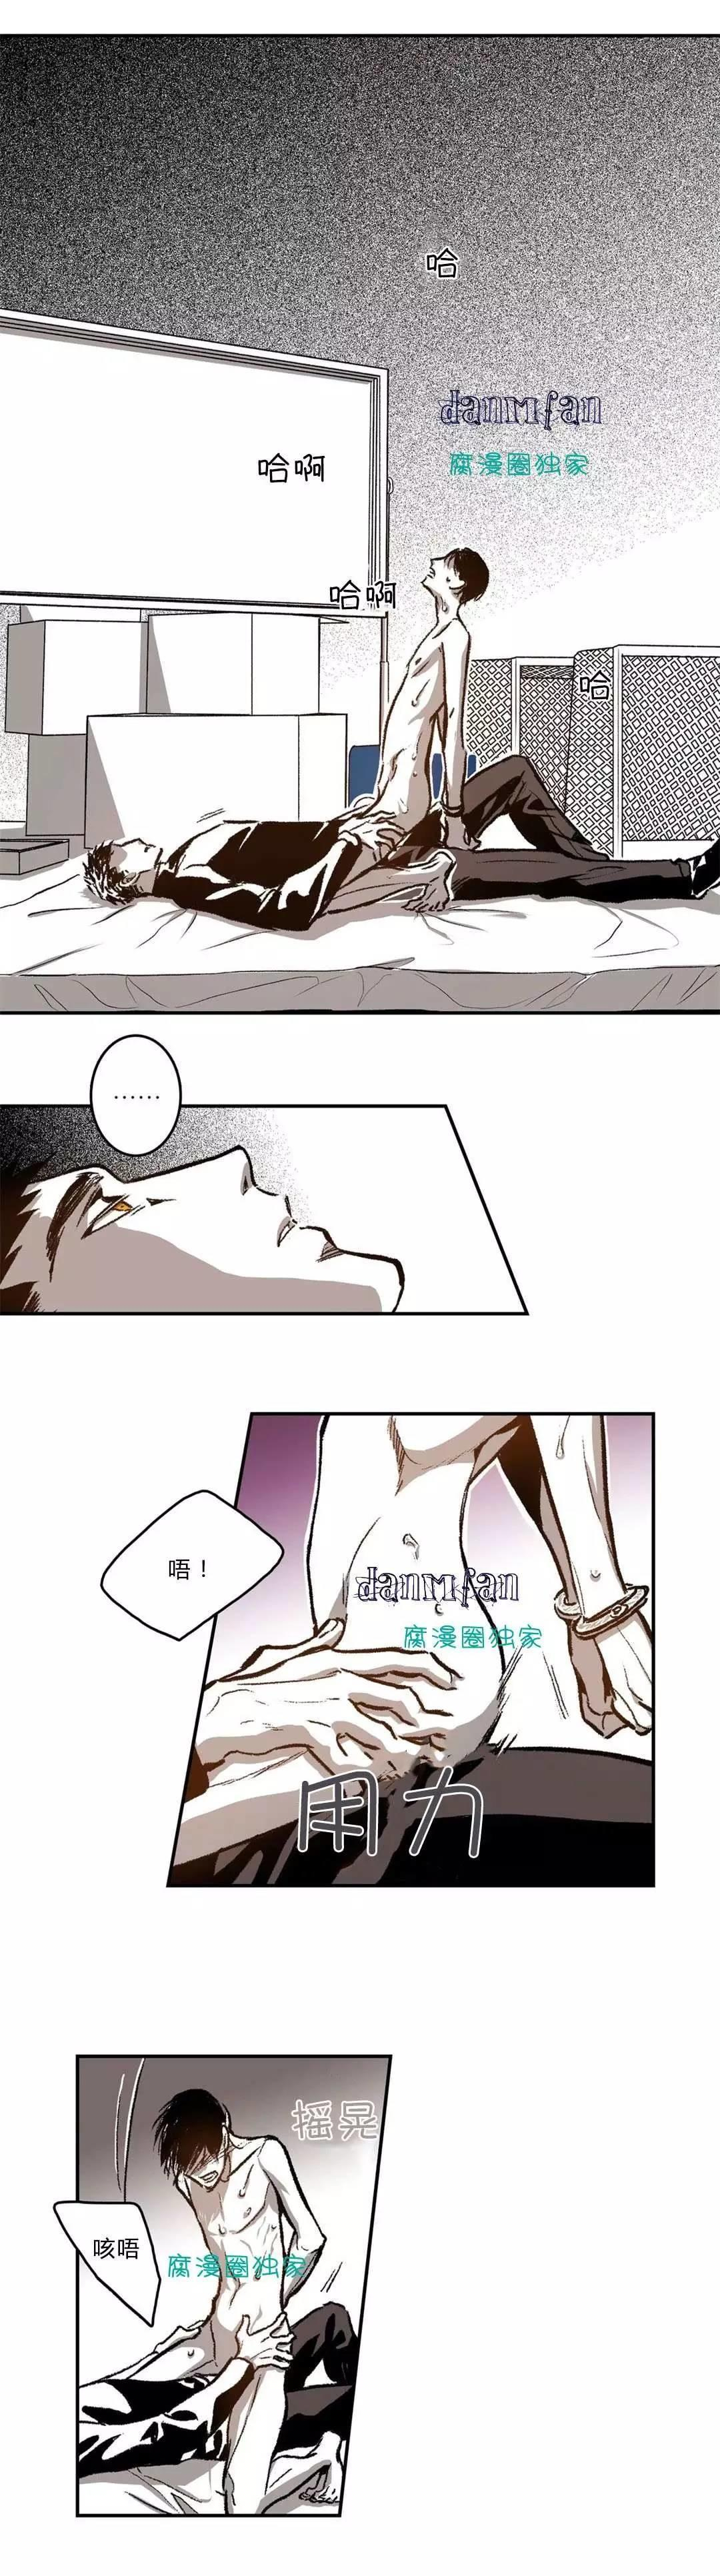 Warehouse chapter 26 4